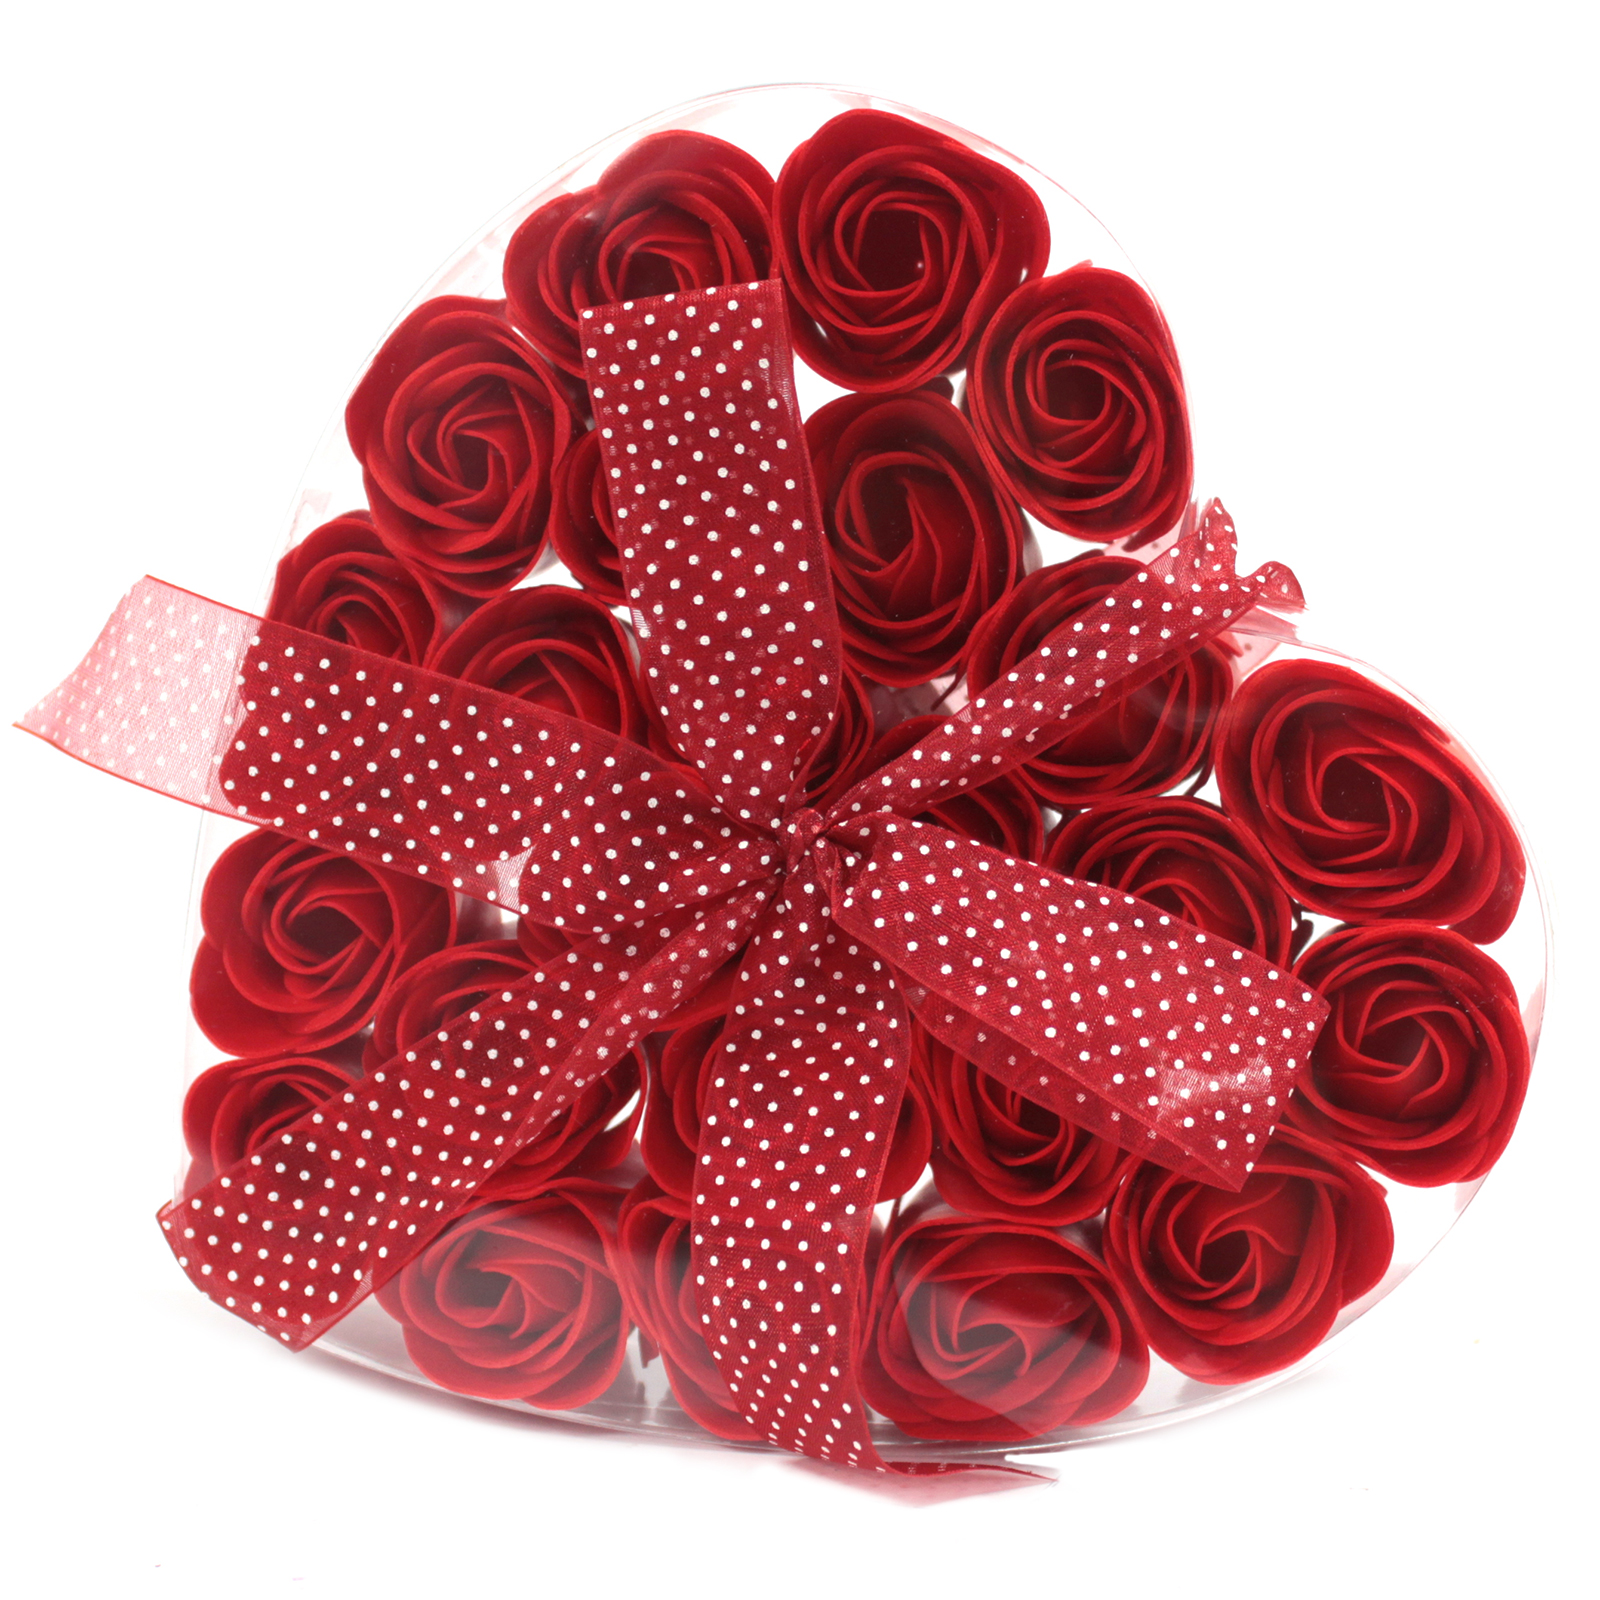 1x Set of 24 Soap Flower Heart Box - Red Roses